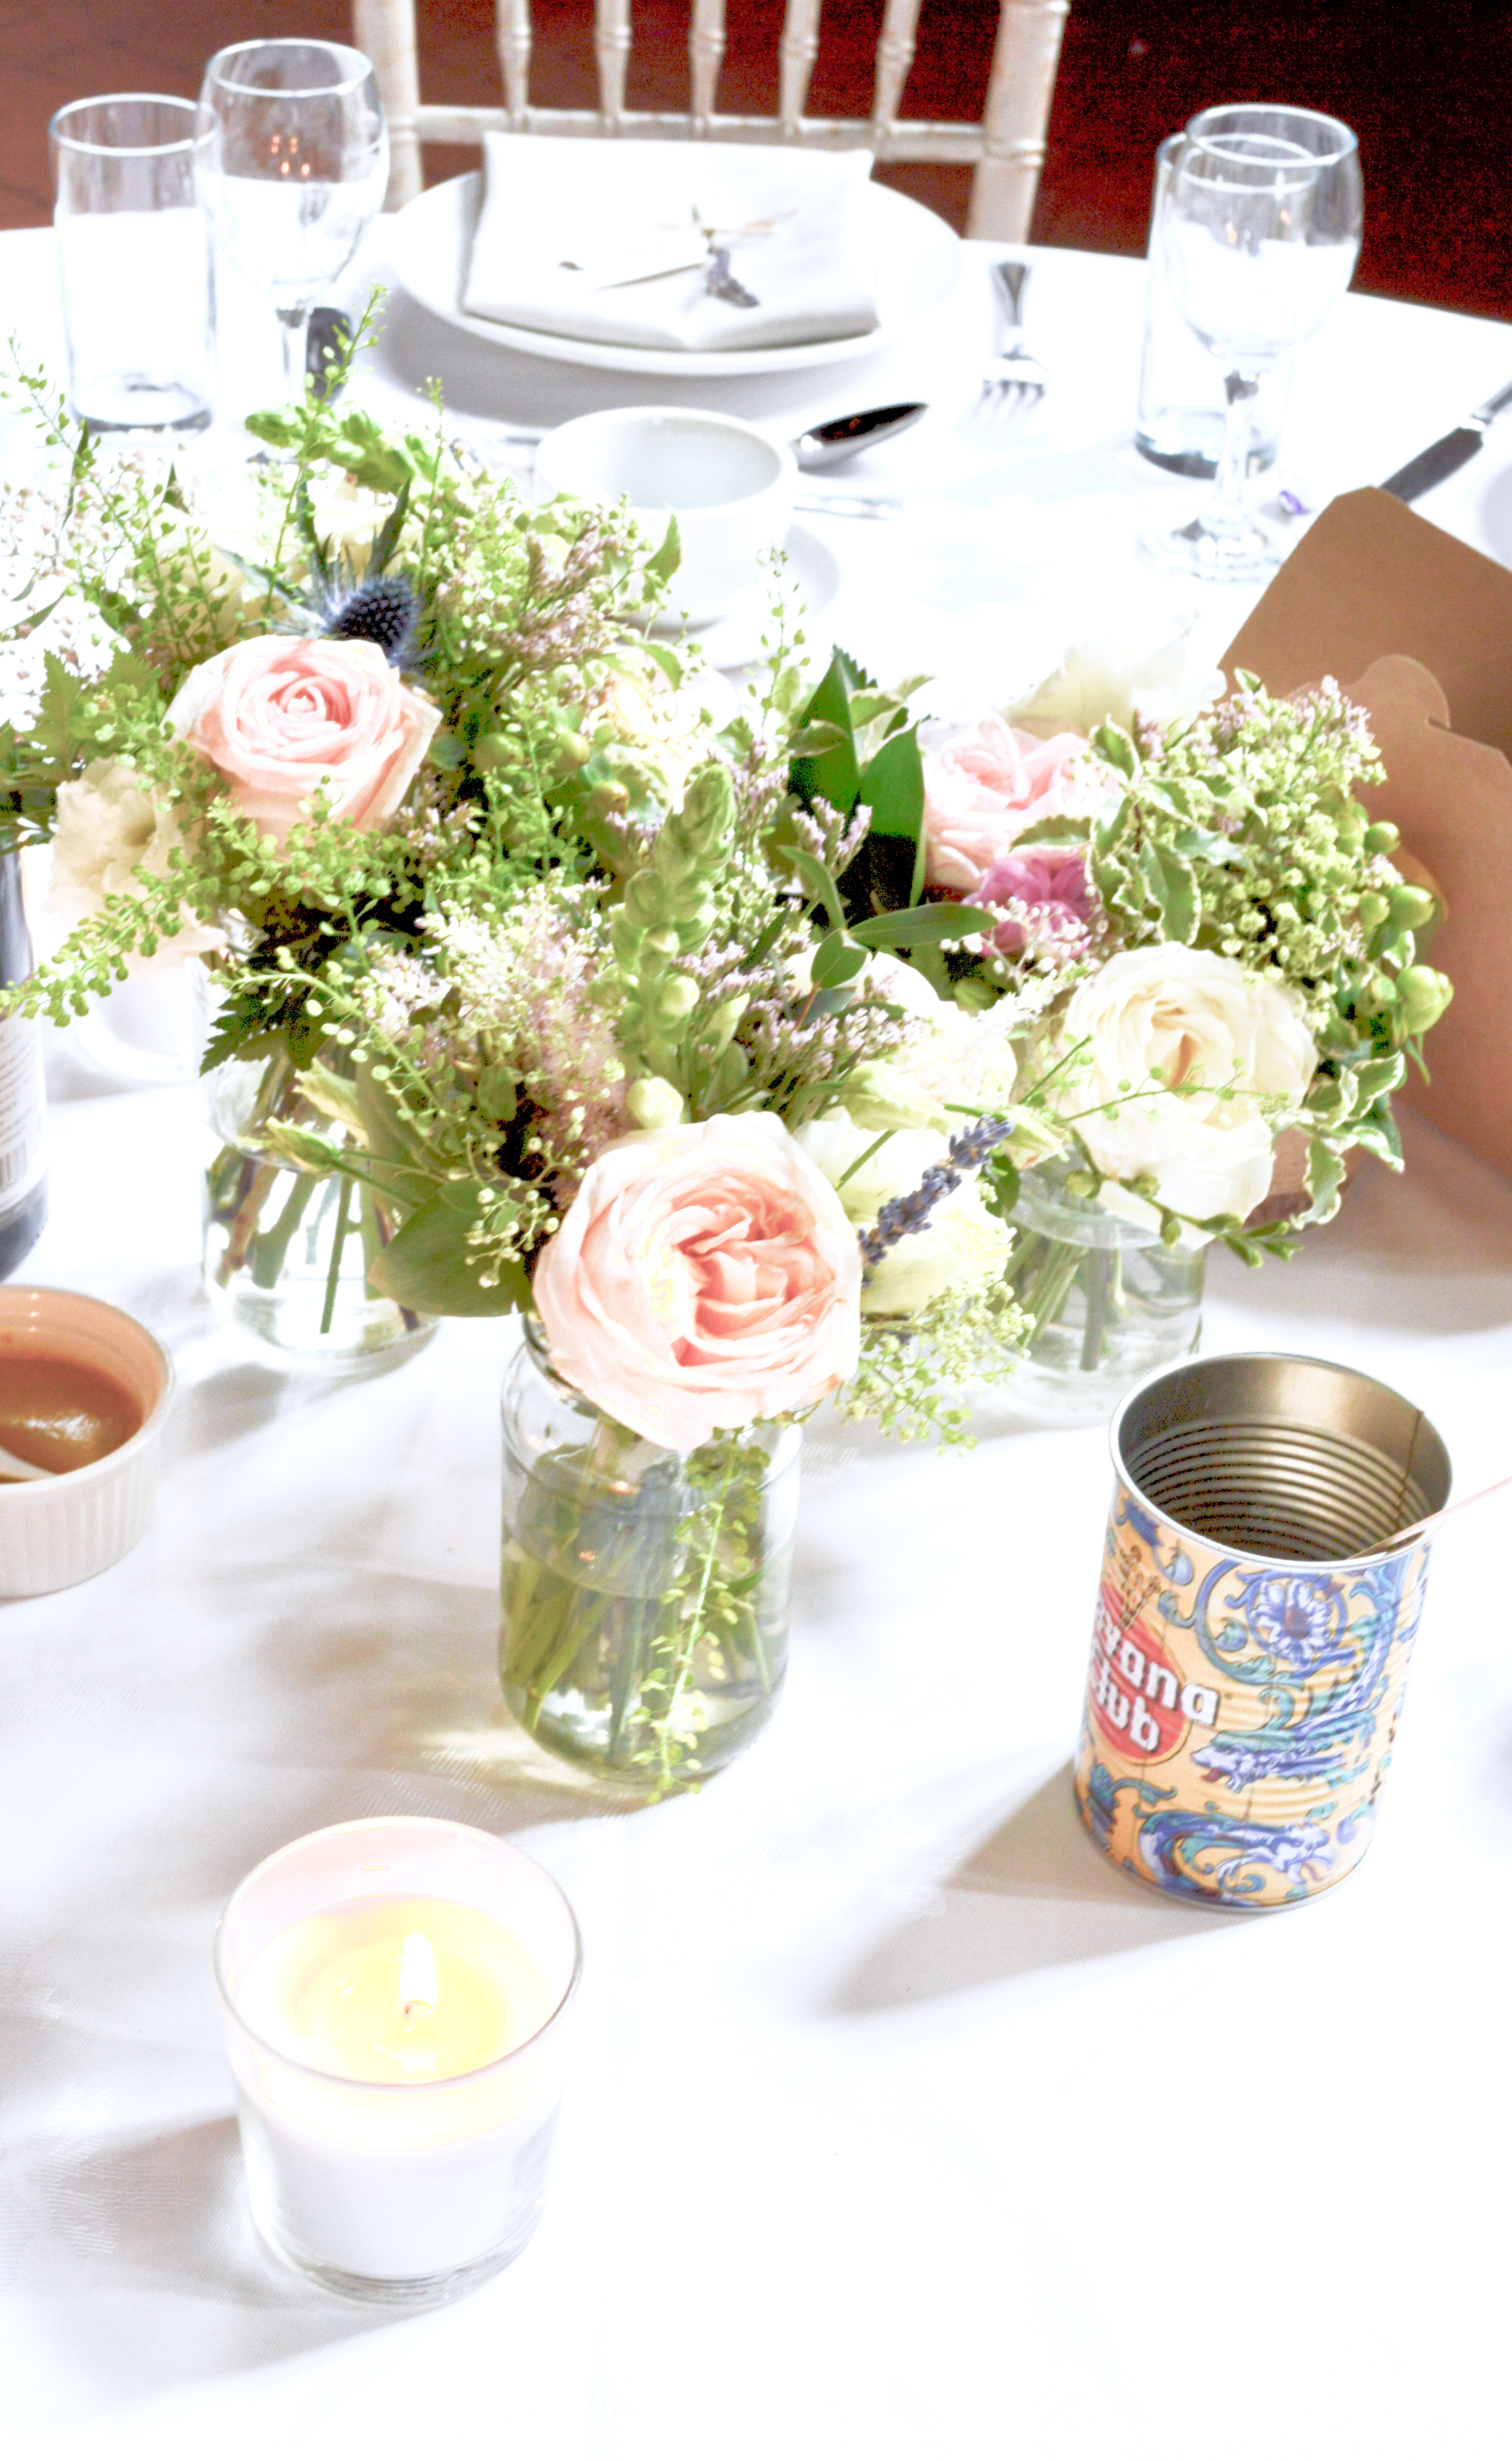 Rustic pink and blue Roses, Thistle, Lisianthus, Peonies, David Austin roses, Delphinium and foliage wedding centrepieces jam jars Cherie Kelly flowers London